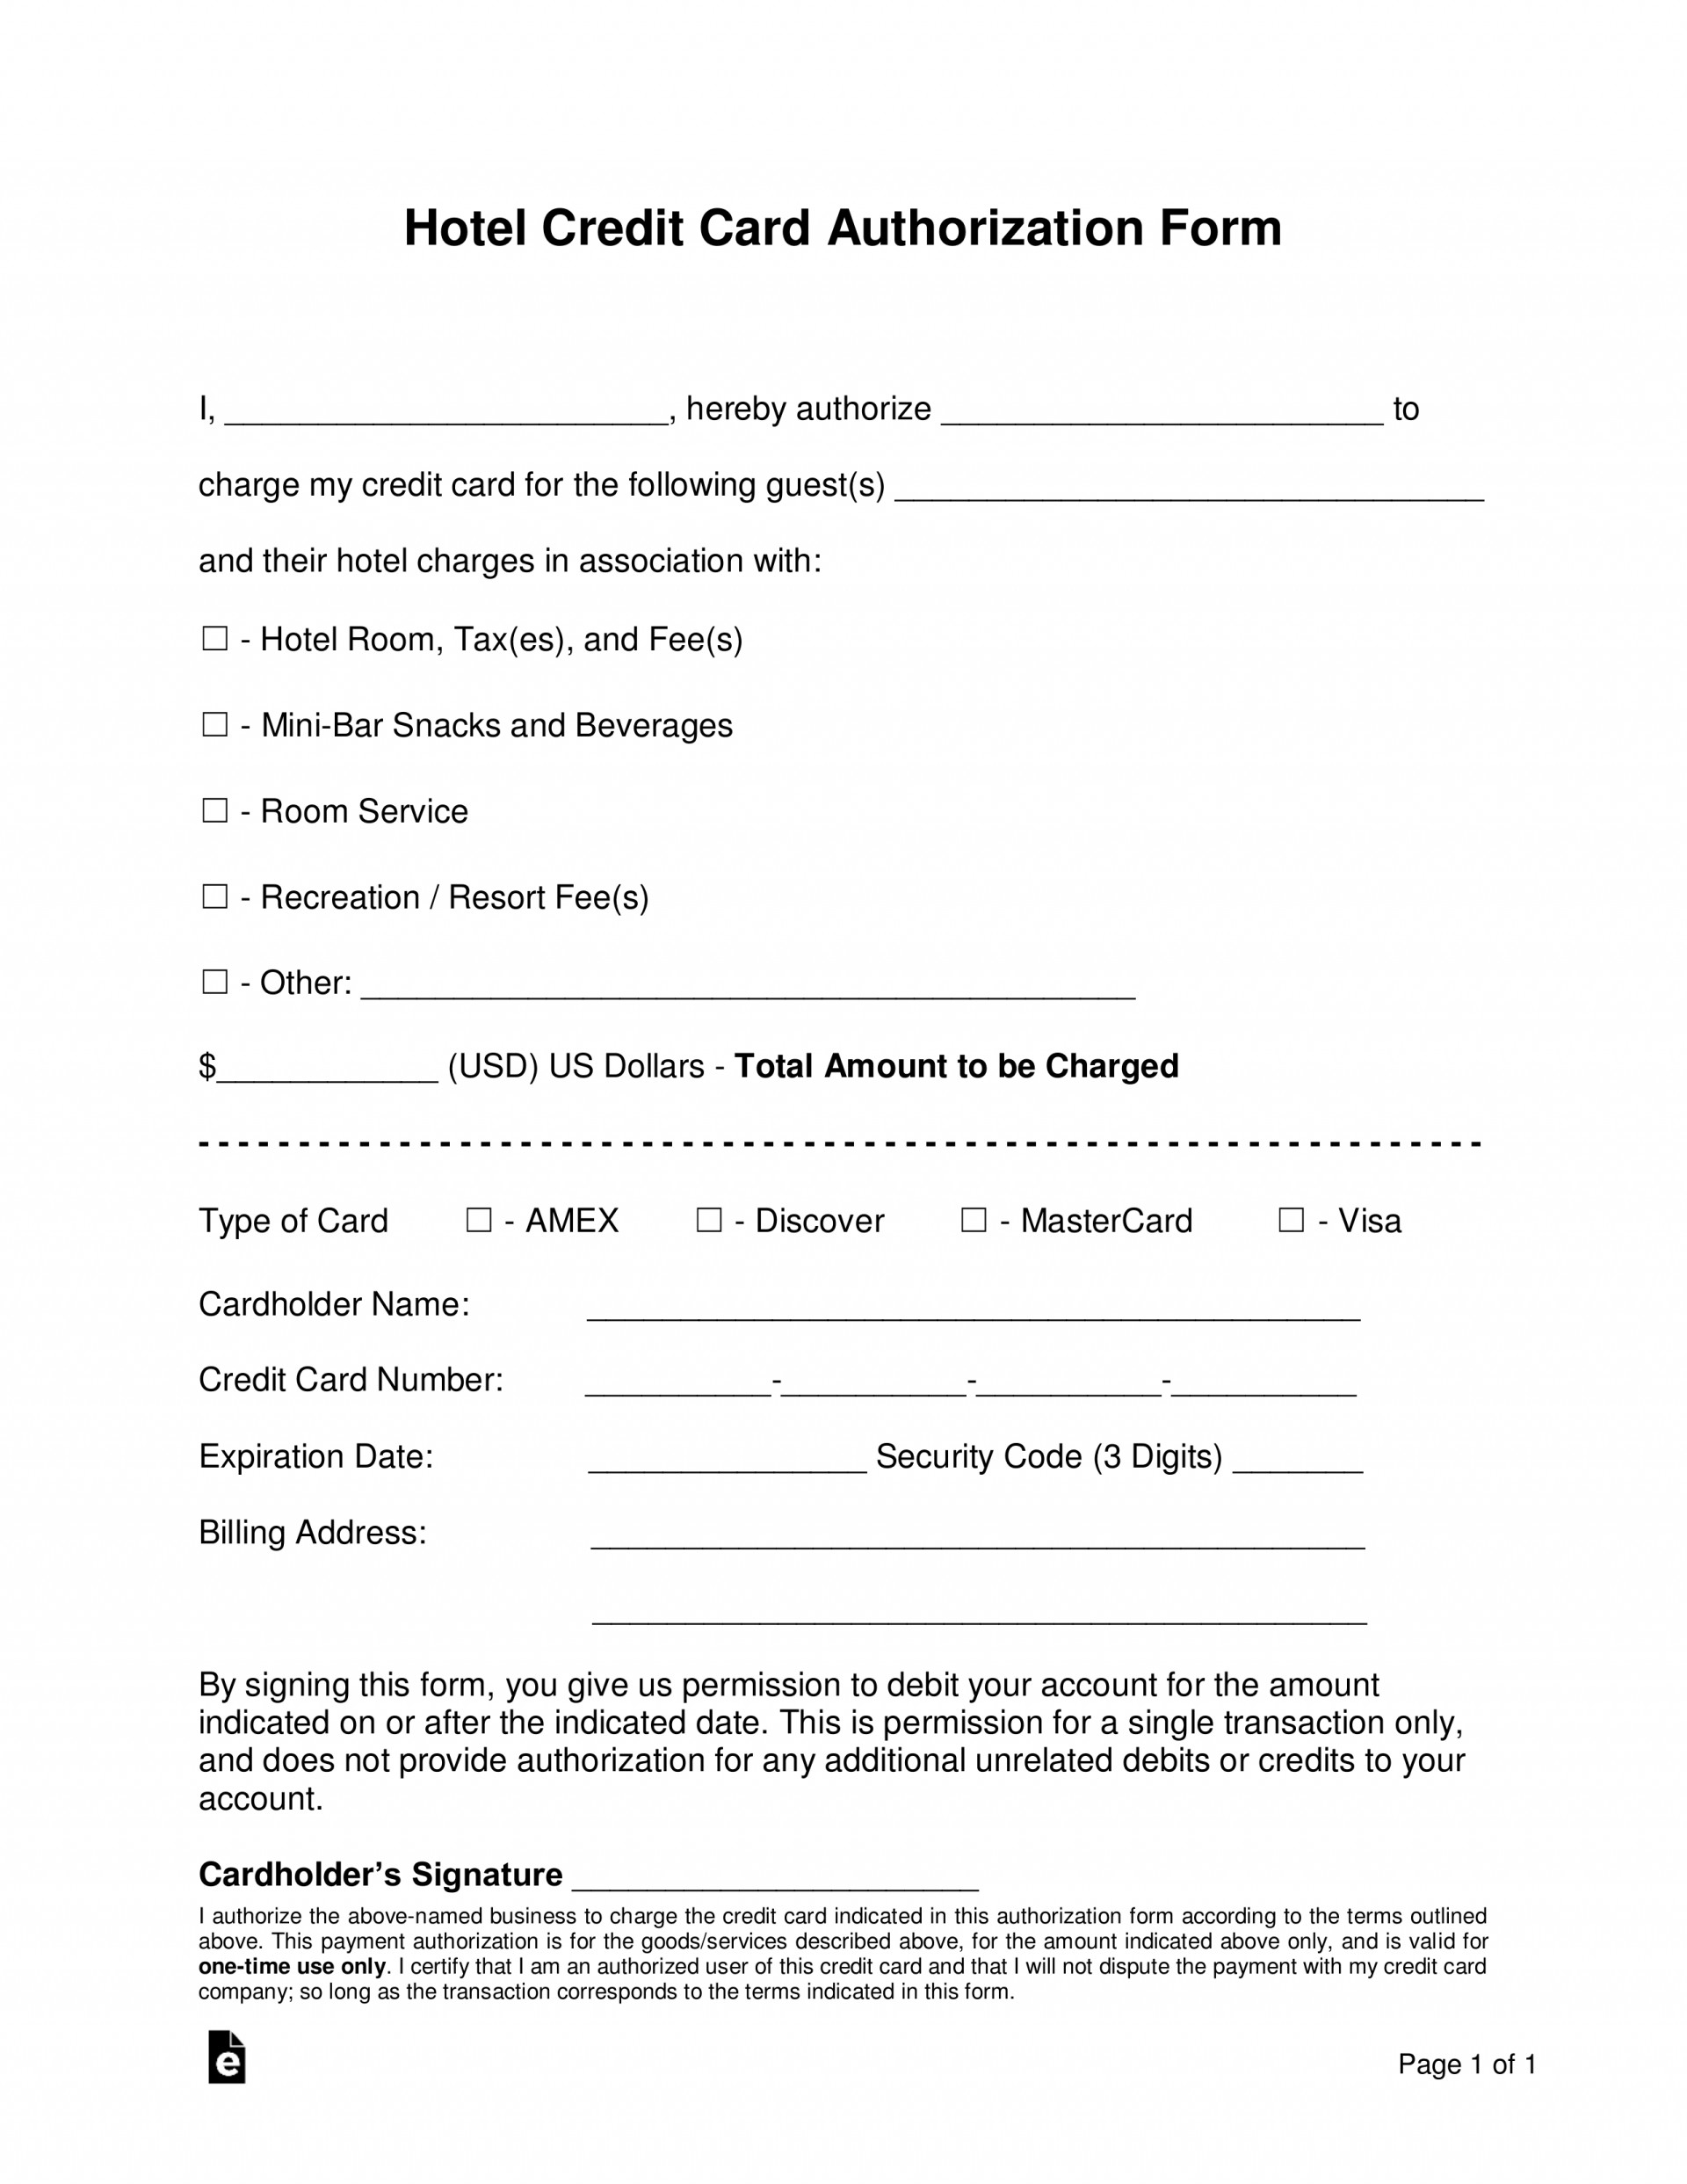 013 Credit Card Authorization Form Template Doc Hotel Within Hotel Credit Card Authorization Form Template